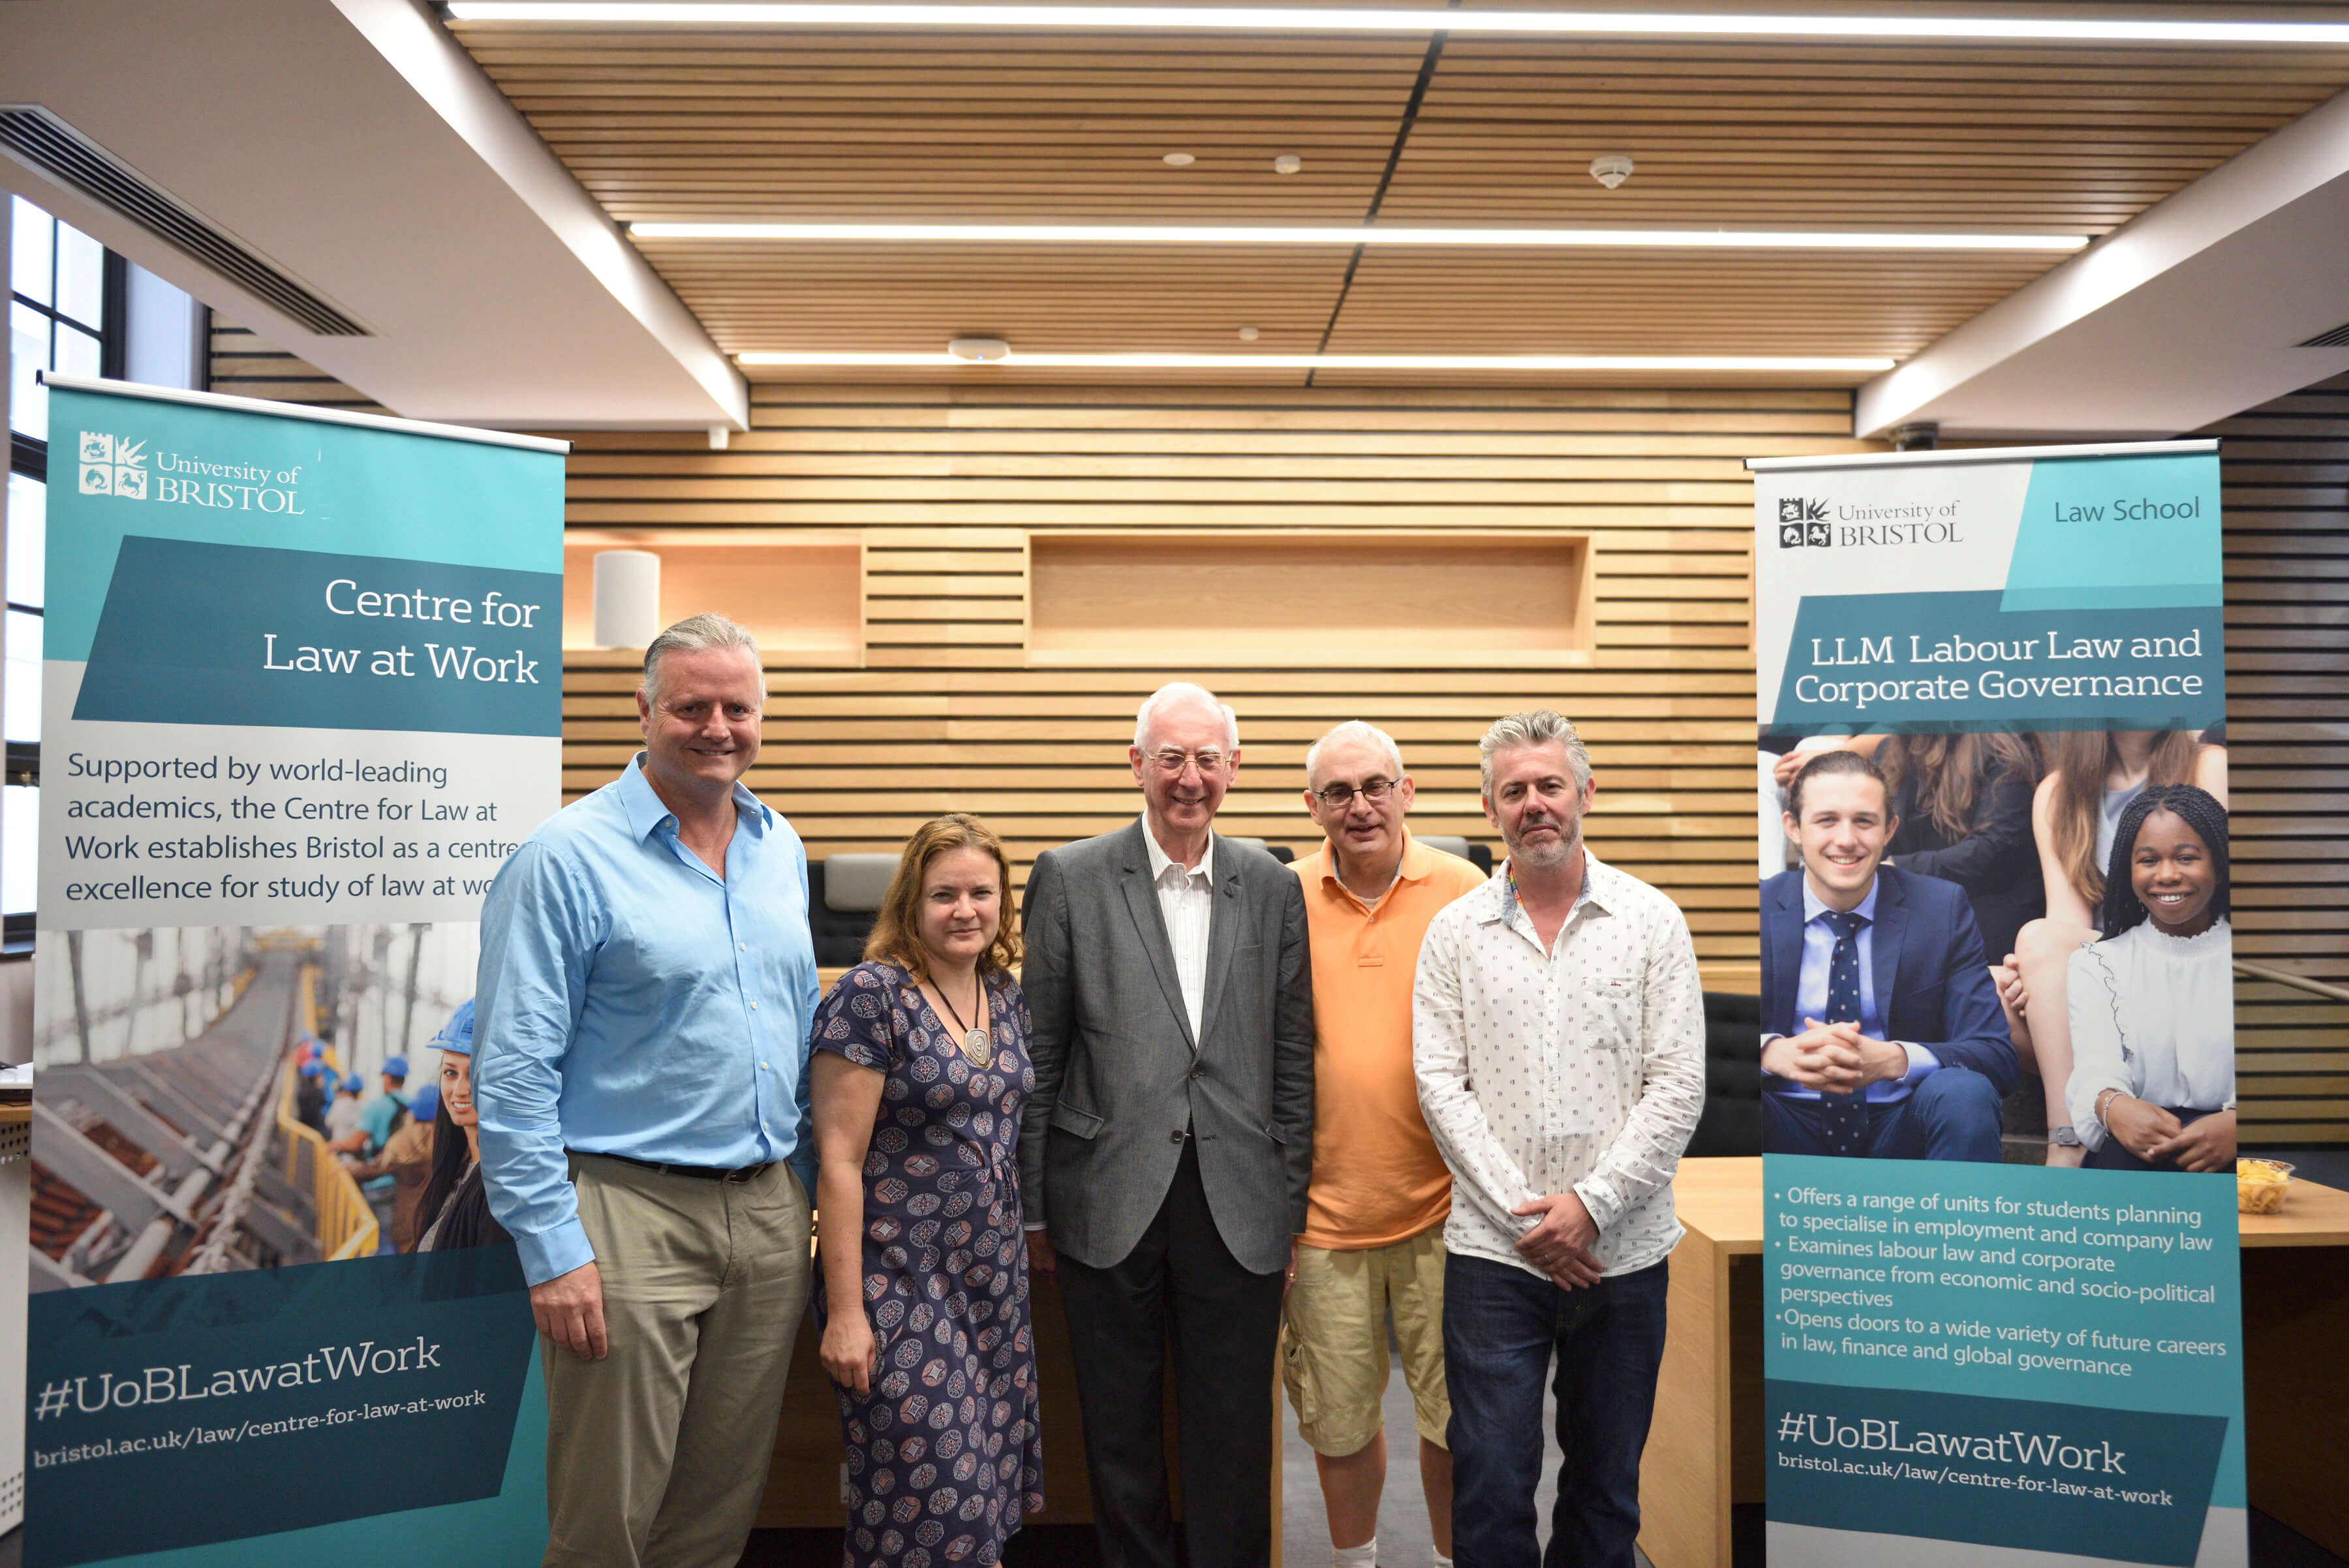 University of Bristol celebrates launch of new Centre for Law at Work